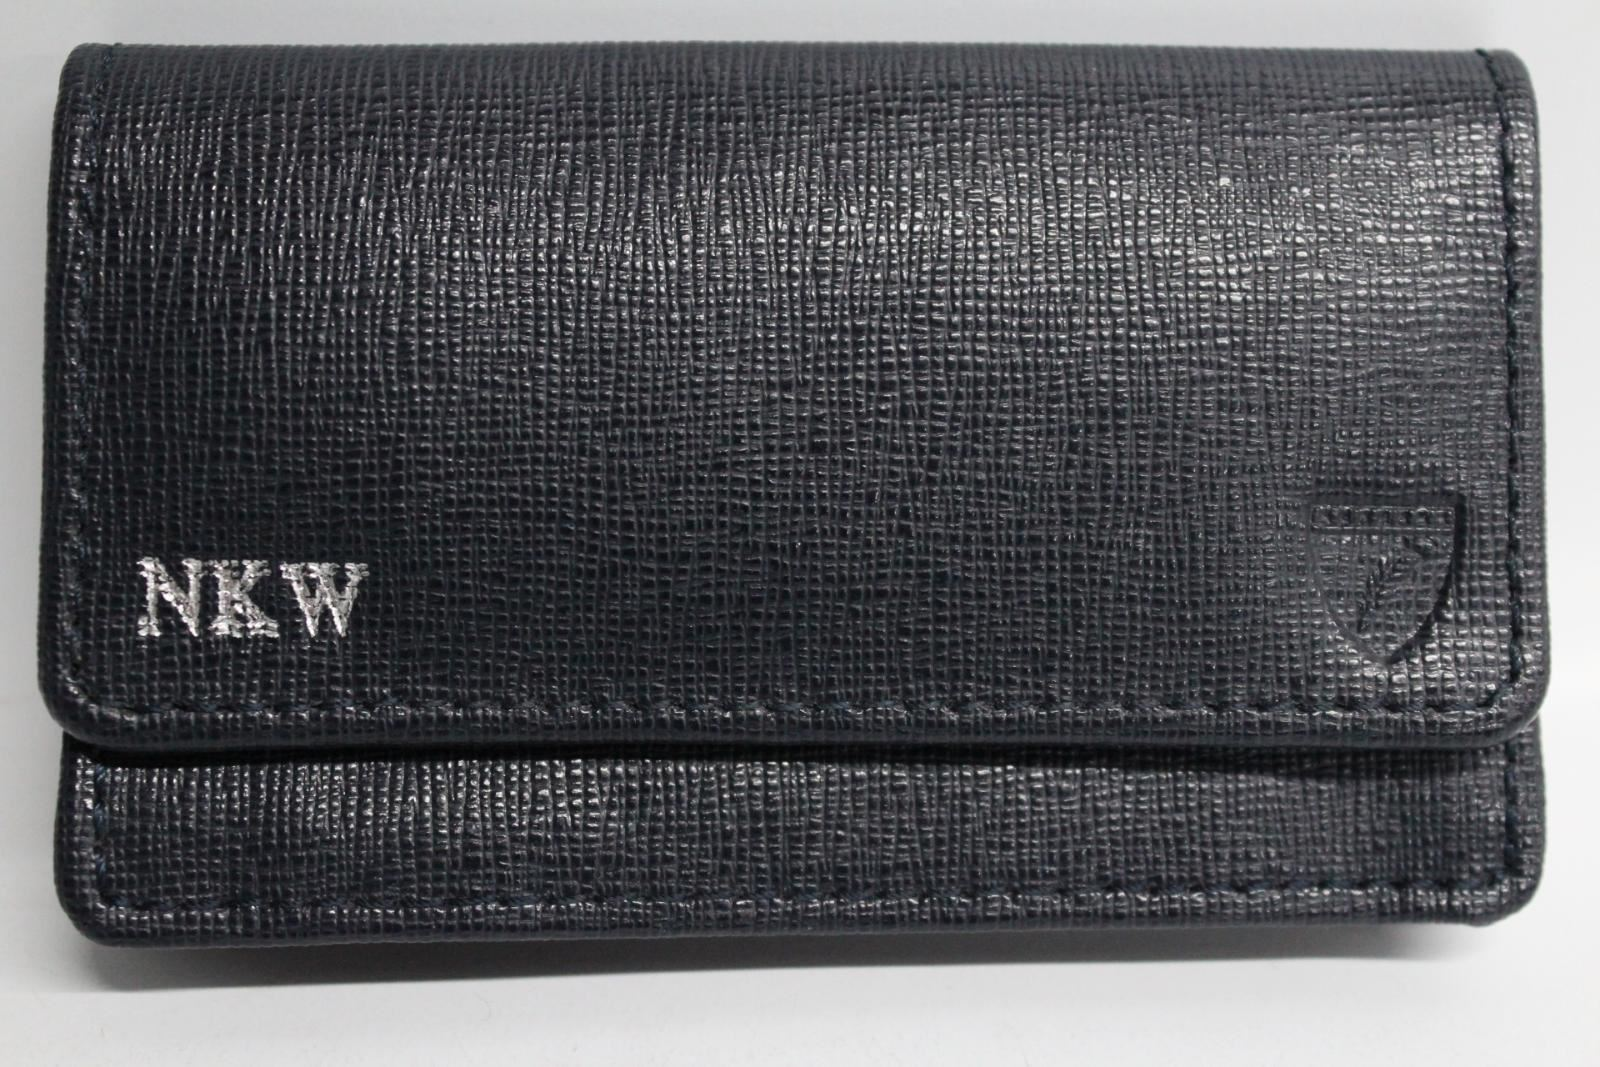 ASPINAL-OF-LONDON-Blue-Leather-Credit-Card-Holder-Wallet-Initials-NKW-NEW